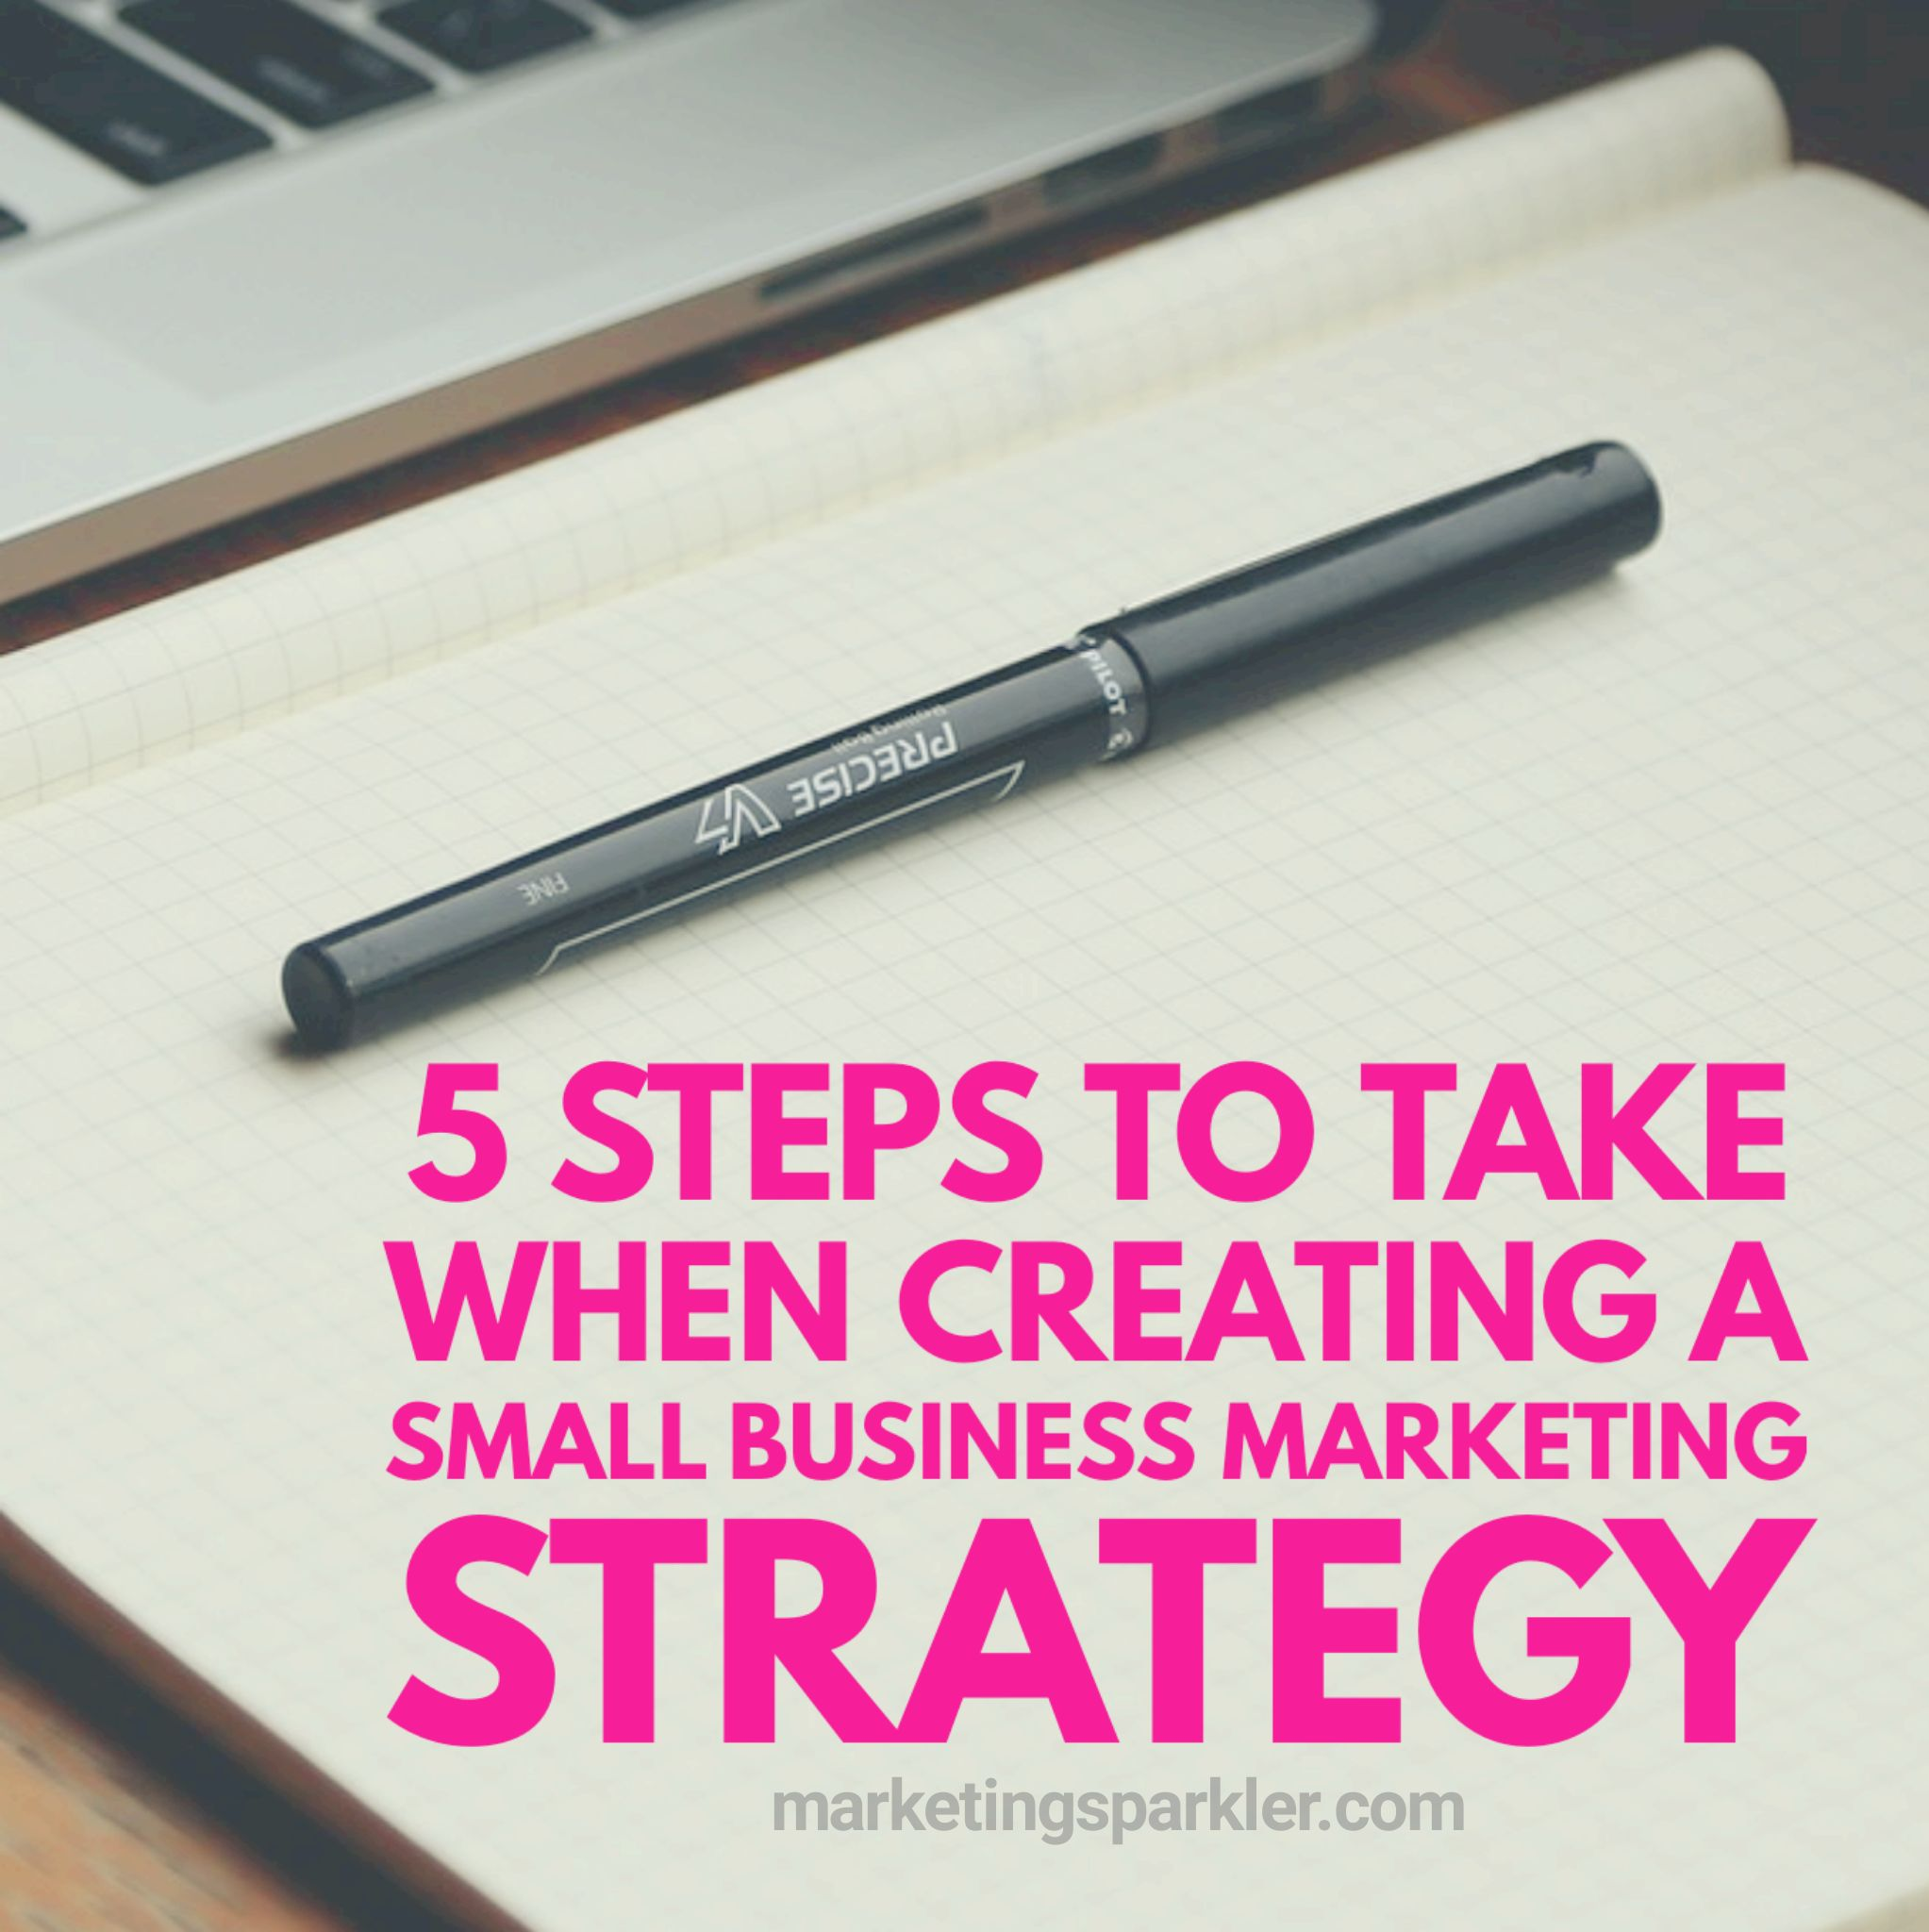 small business marketing stradegy Top 10 marketing strategies for small businesses by renea myers, owner of renea myers marketing #1 be able to describe what you do/what you are in one clear sentence.